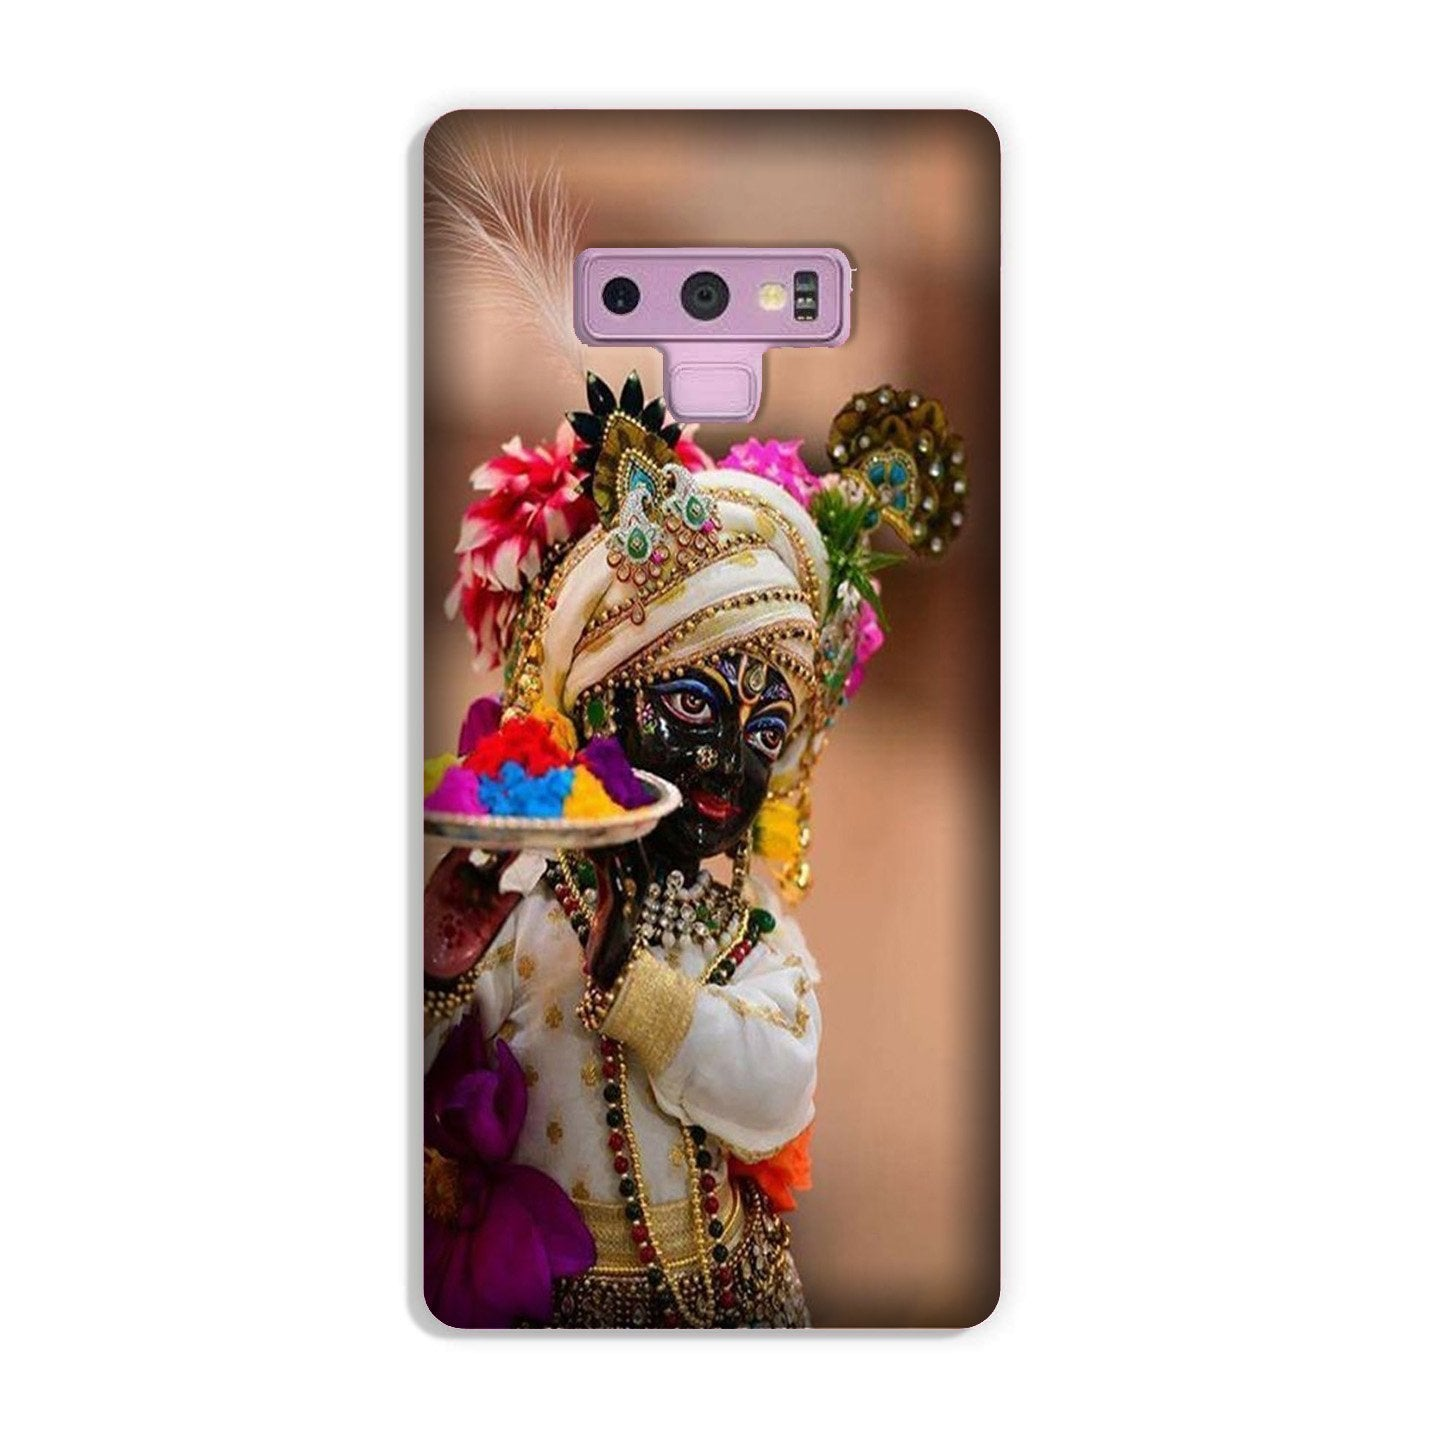 Lord Krishna2 Case for Galaxy Note 9